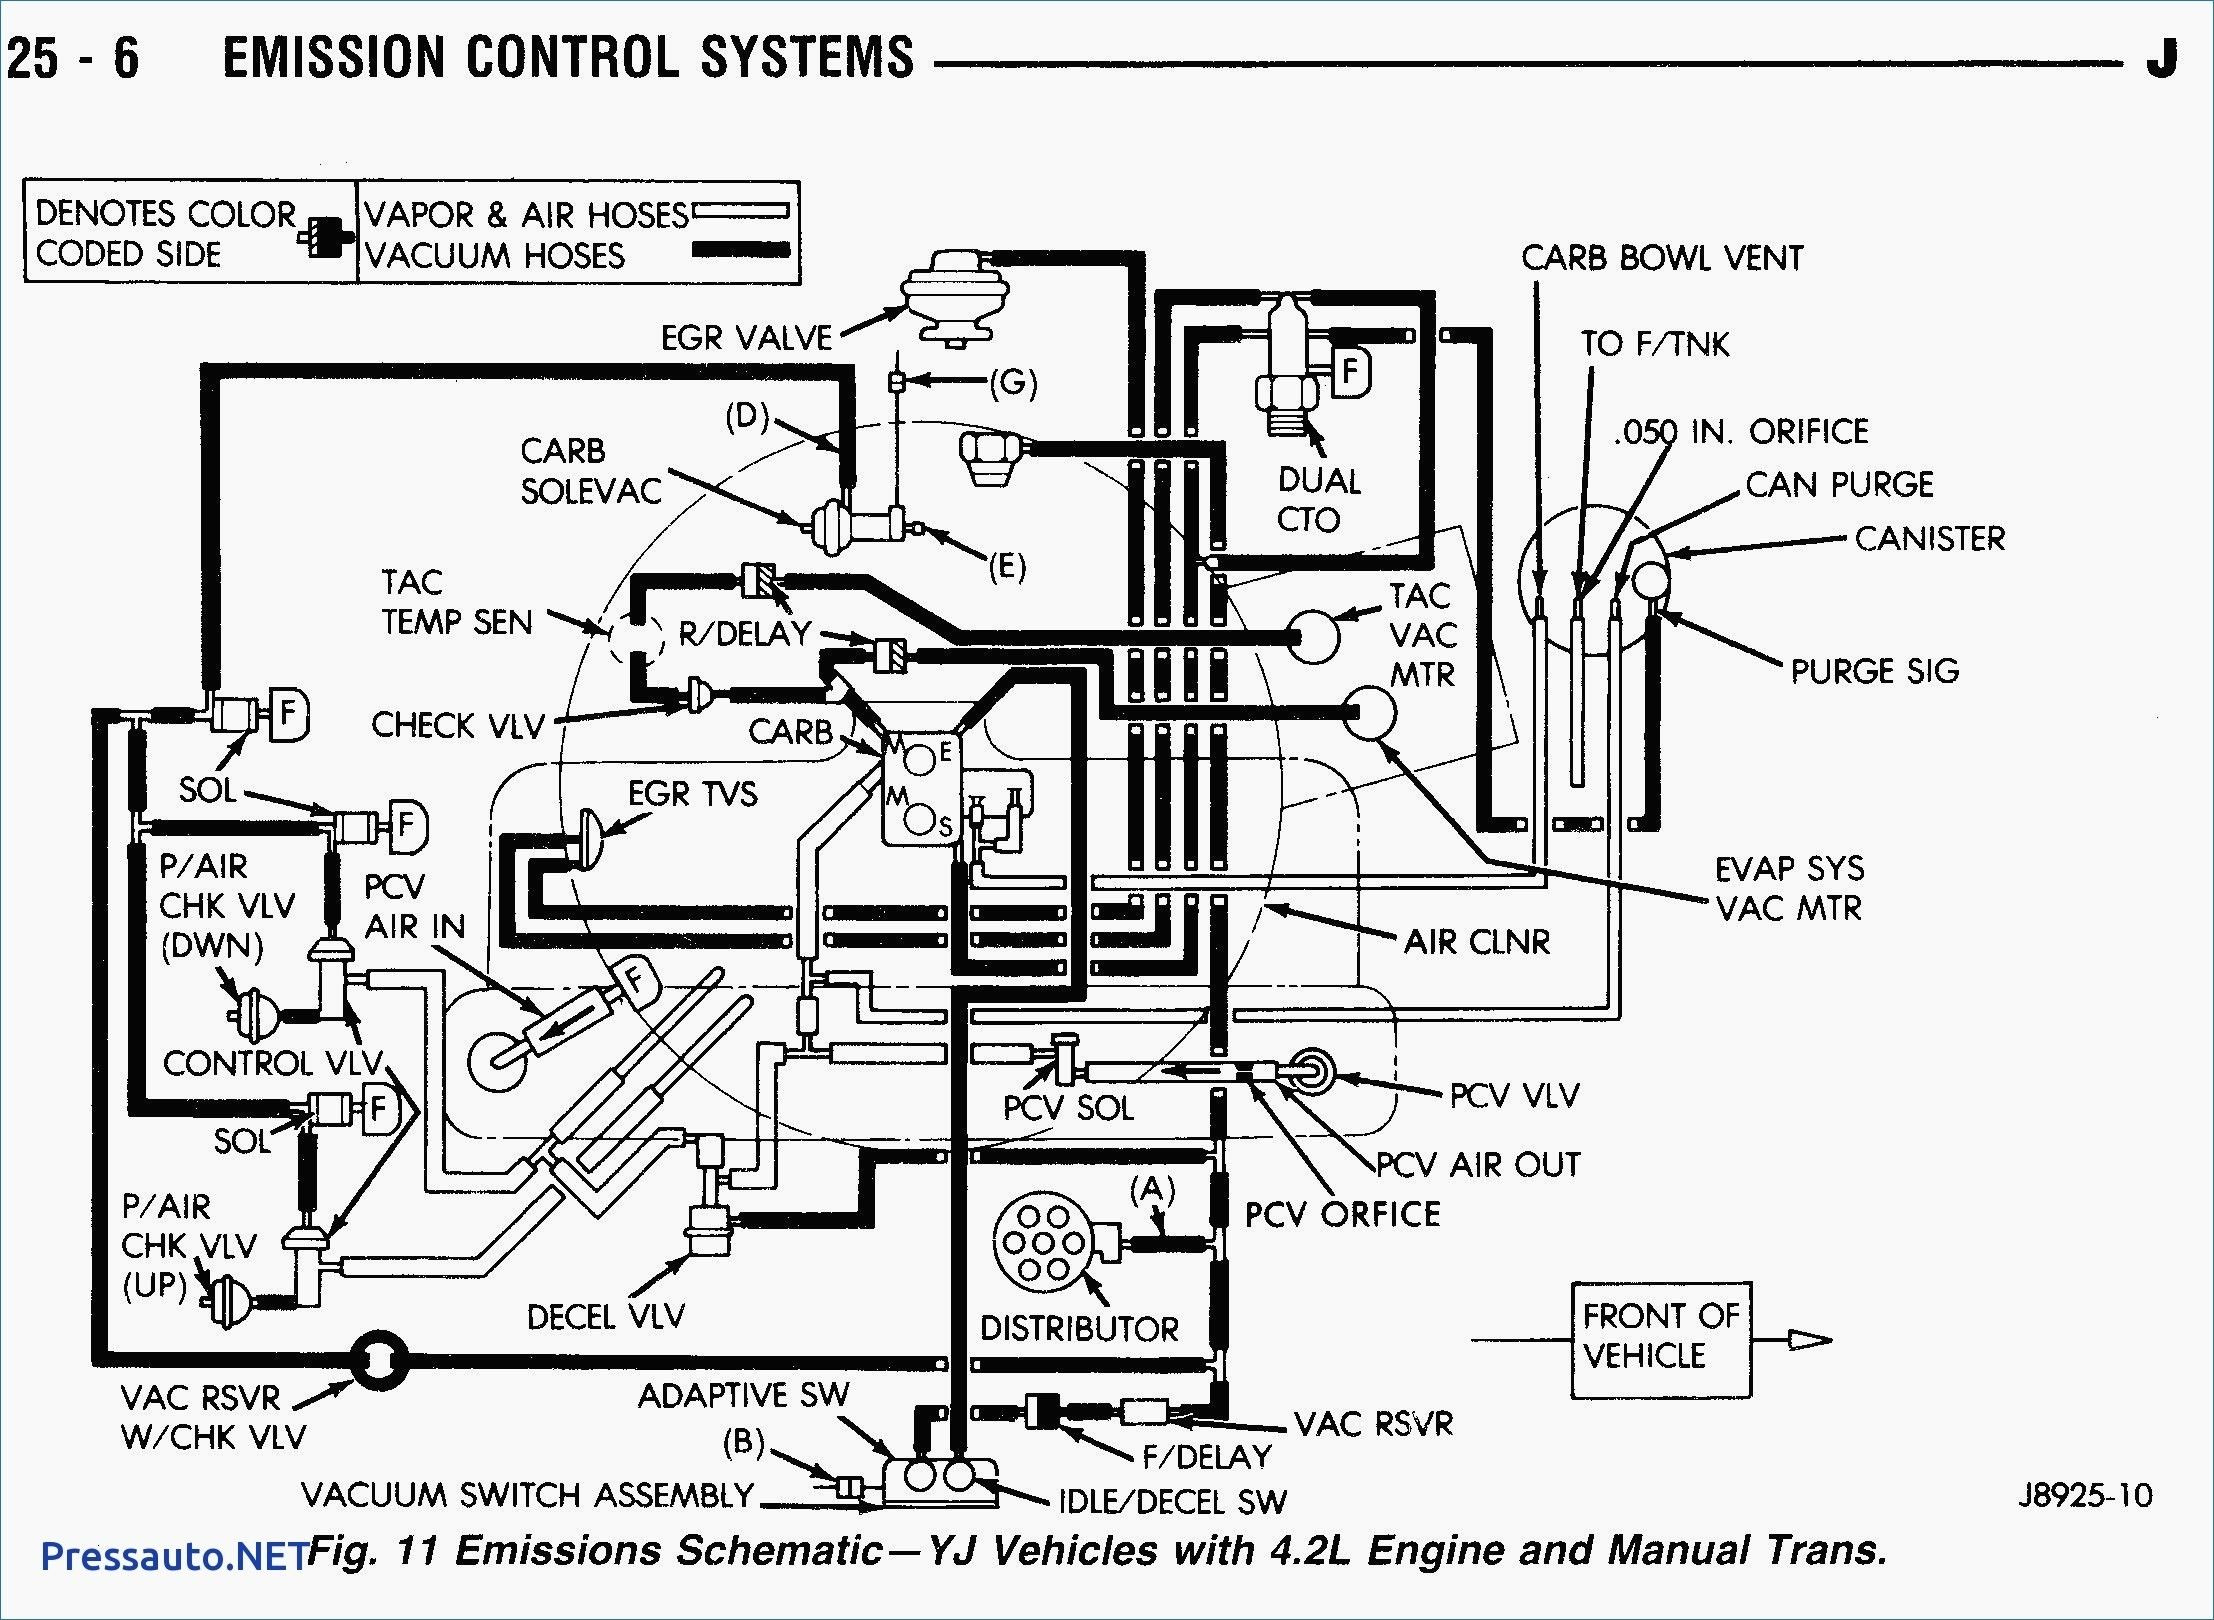 hight resolution of 1989 jeep yj engine diagram data wiring diagram 1989 jeep cherokee vacuum line diagram 1989 jeep wrangler yj ignition